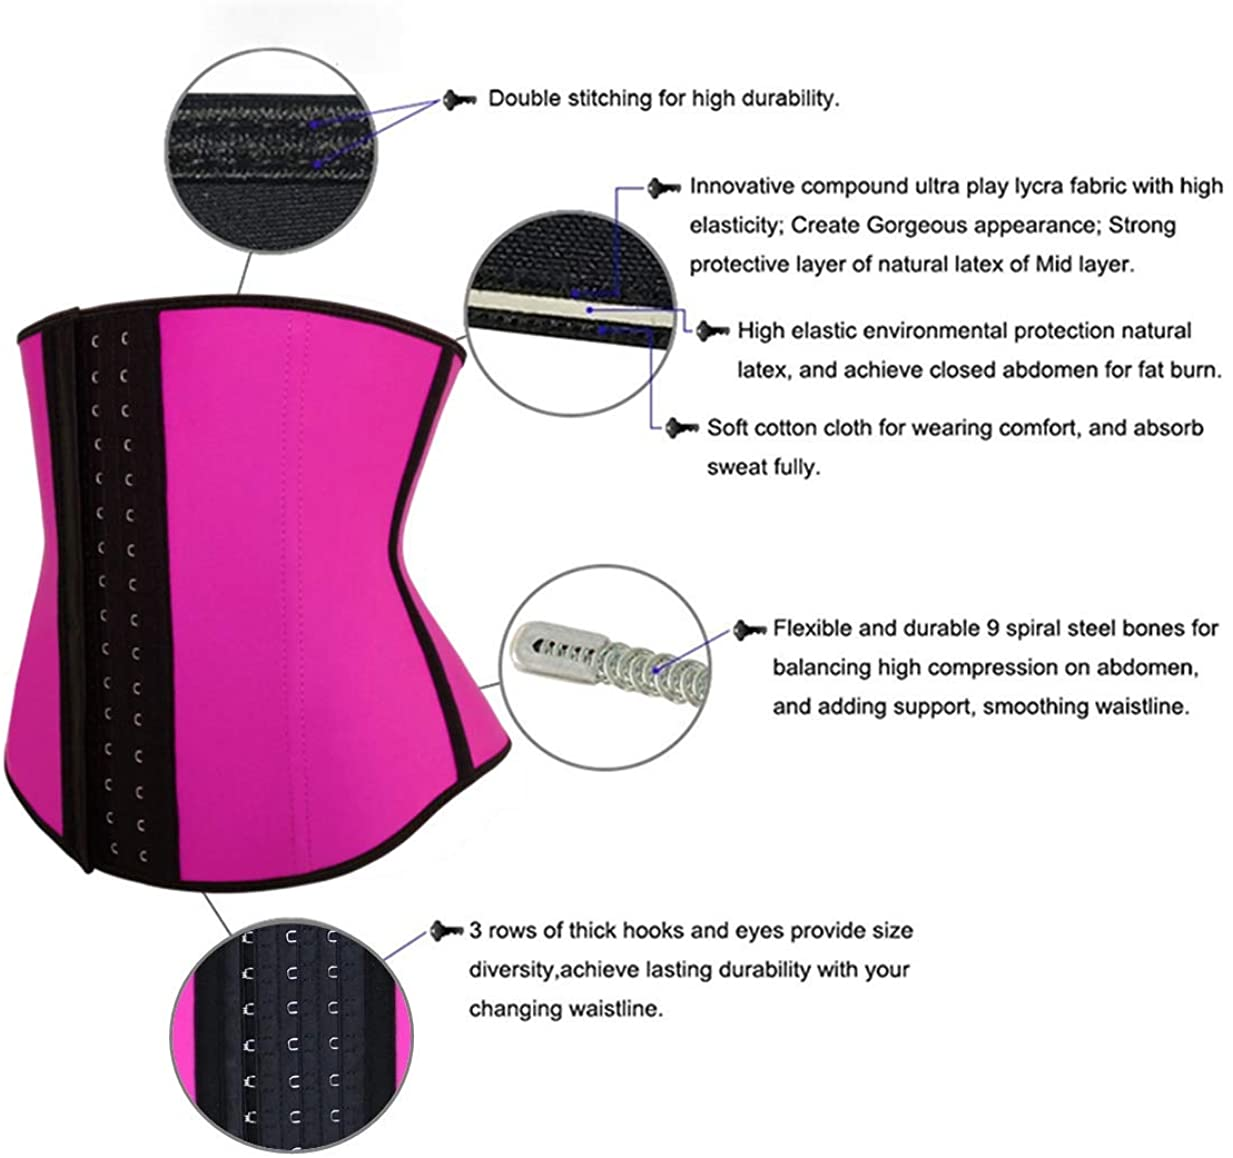 Latex Girdle Waist Trainer for Women Lose Weight Belly Fat Hourglass Body Shaper Corset Postpartum Recovering Back Pain